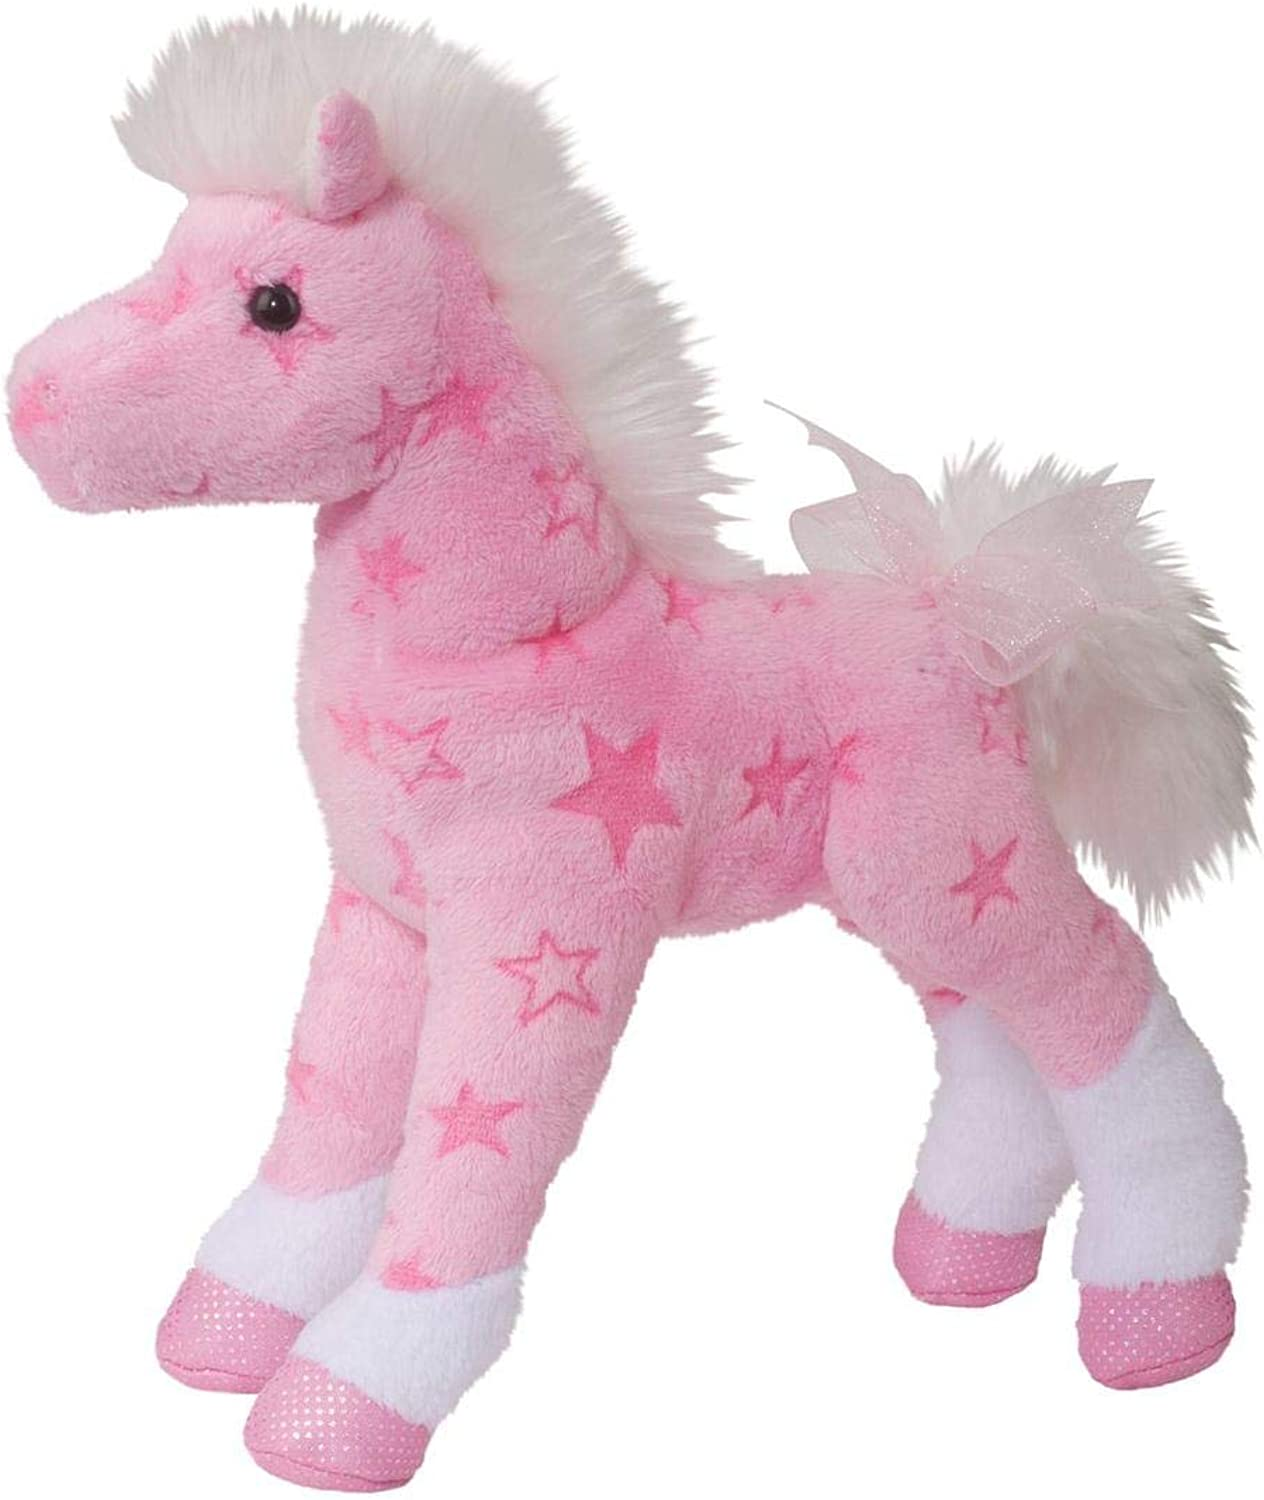 Plush Summer Pink Fantasy Horse 8  by Douglas Cuddle Toys